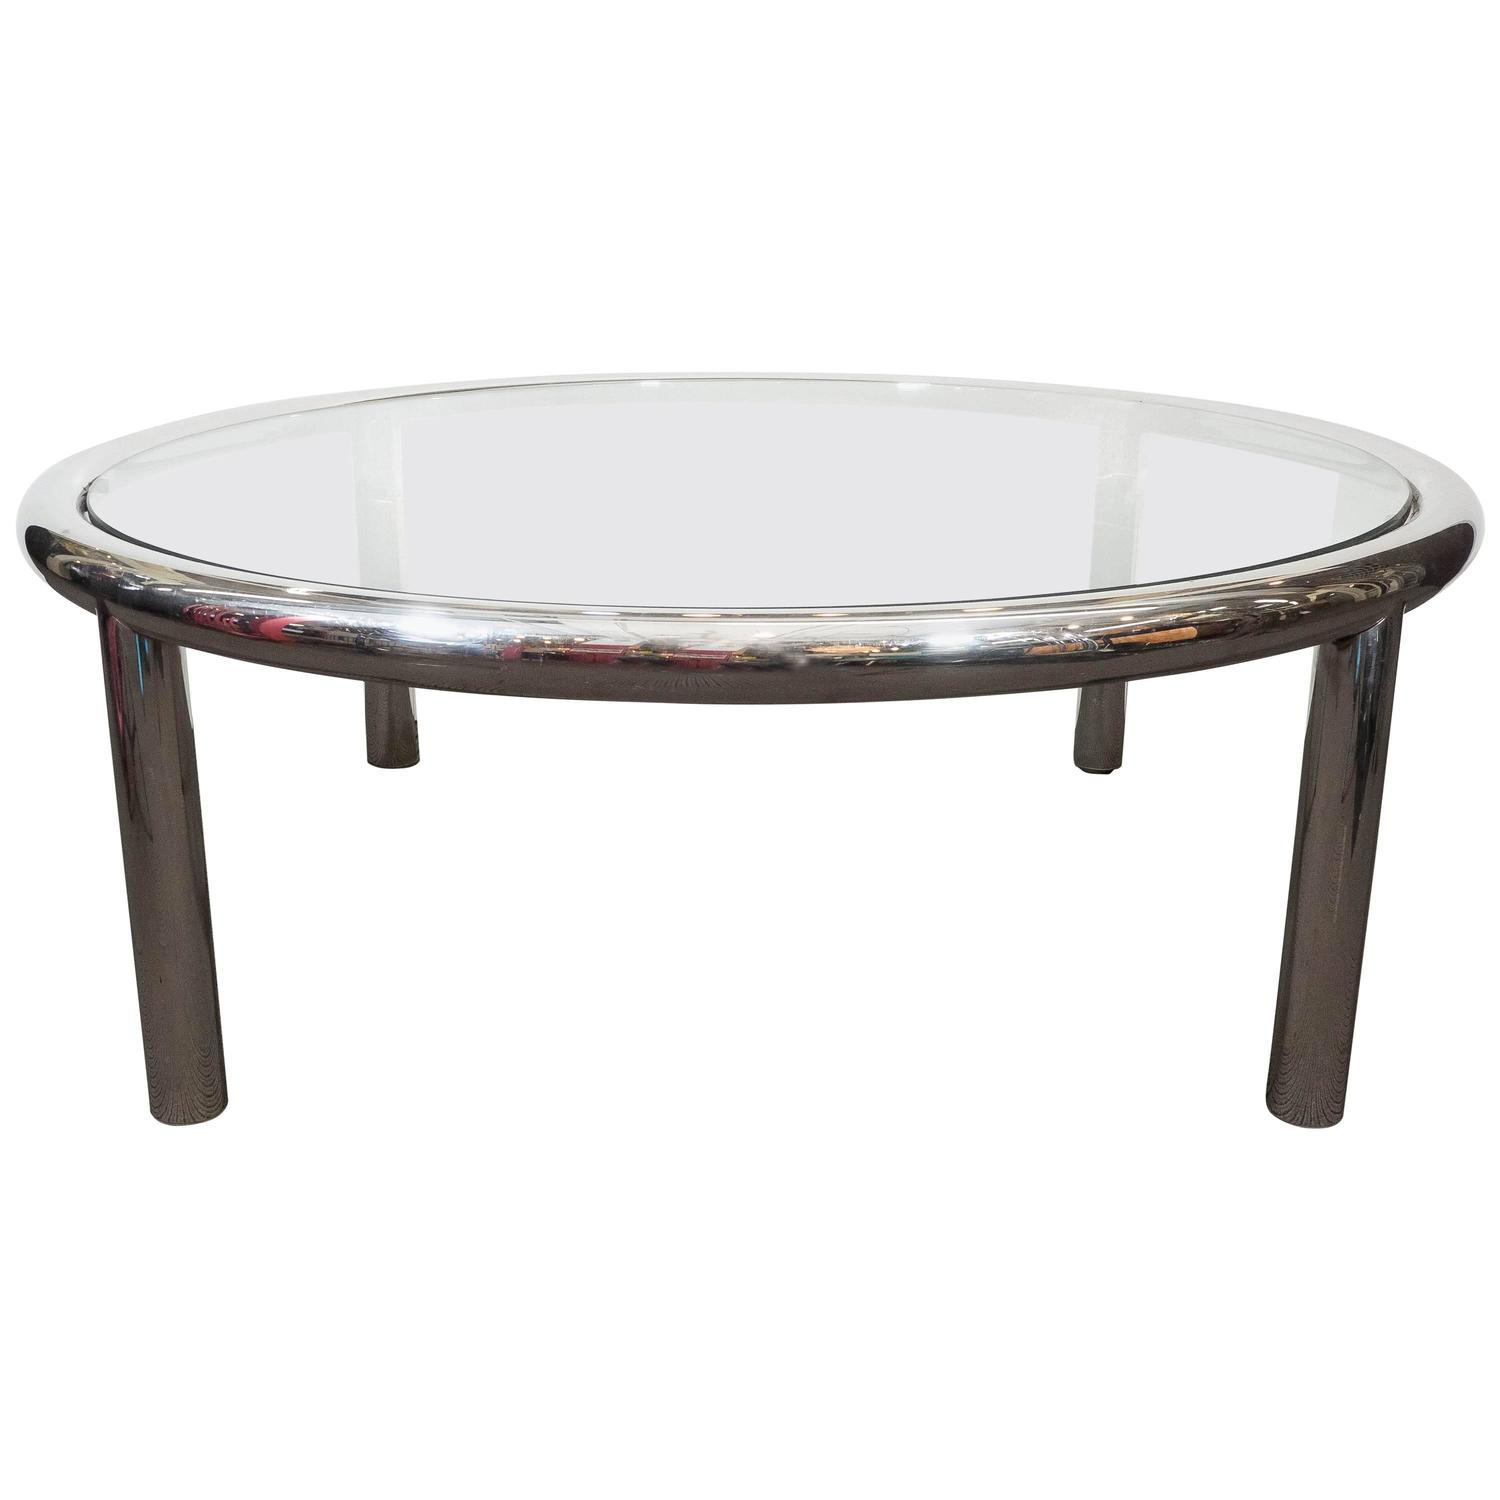 Tubular Chrome Glass Top Round Coffee Table For Sale At